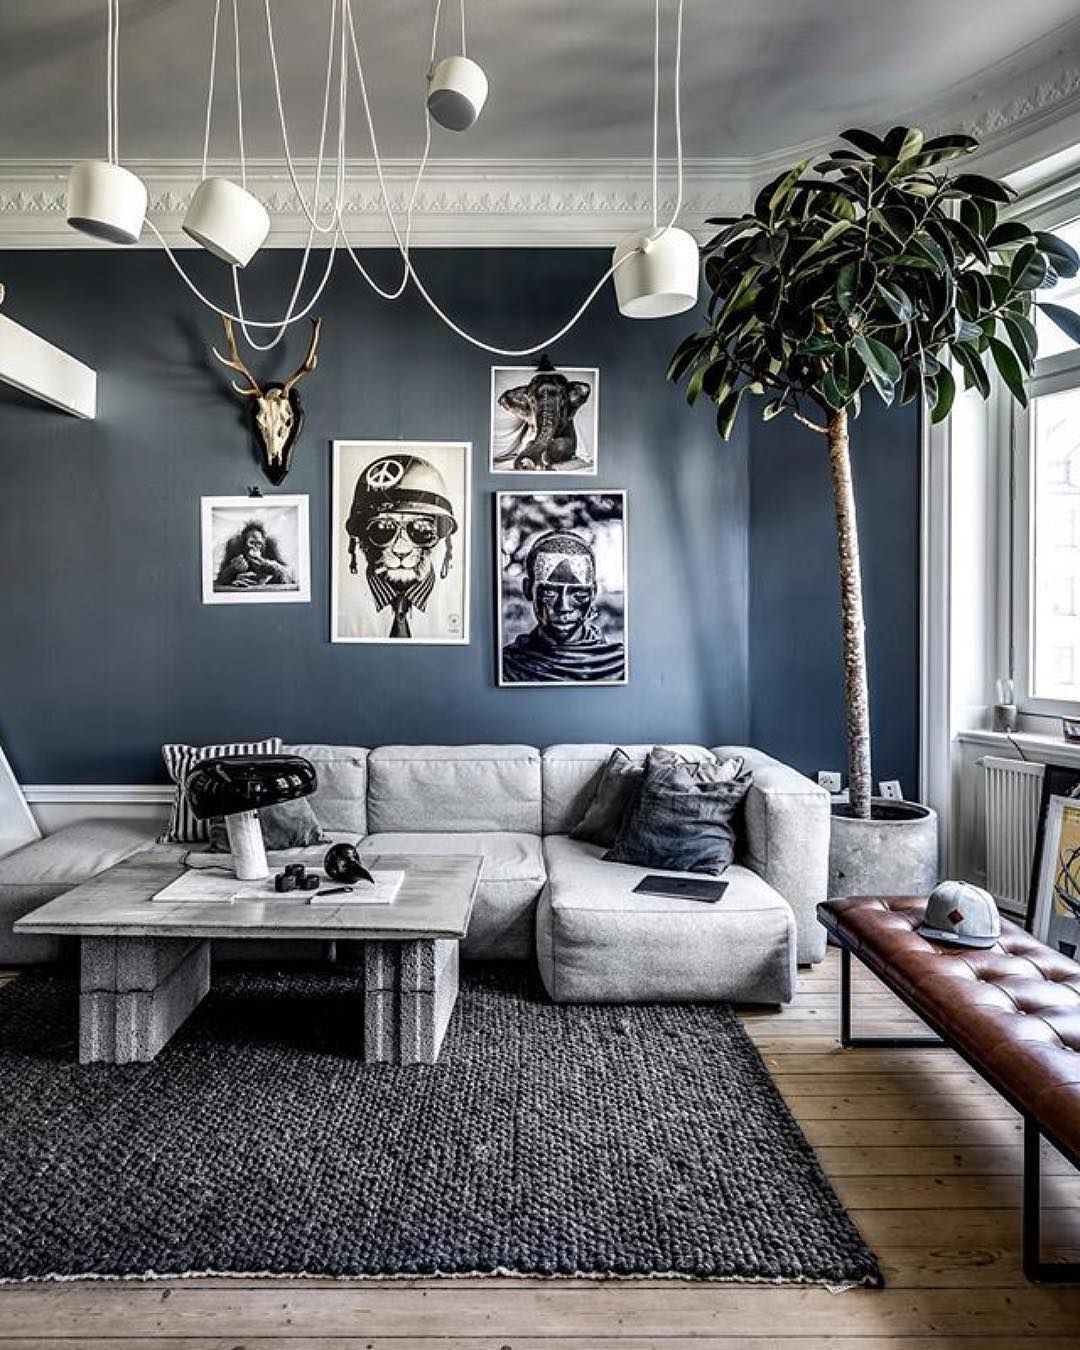 1 205 Likes 22 Comments Interiors Design Architecture Jahddesign On Instagram Inspiration Of T Home Room Design Stylish Living Room Living Room Designs